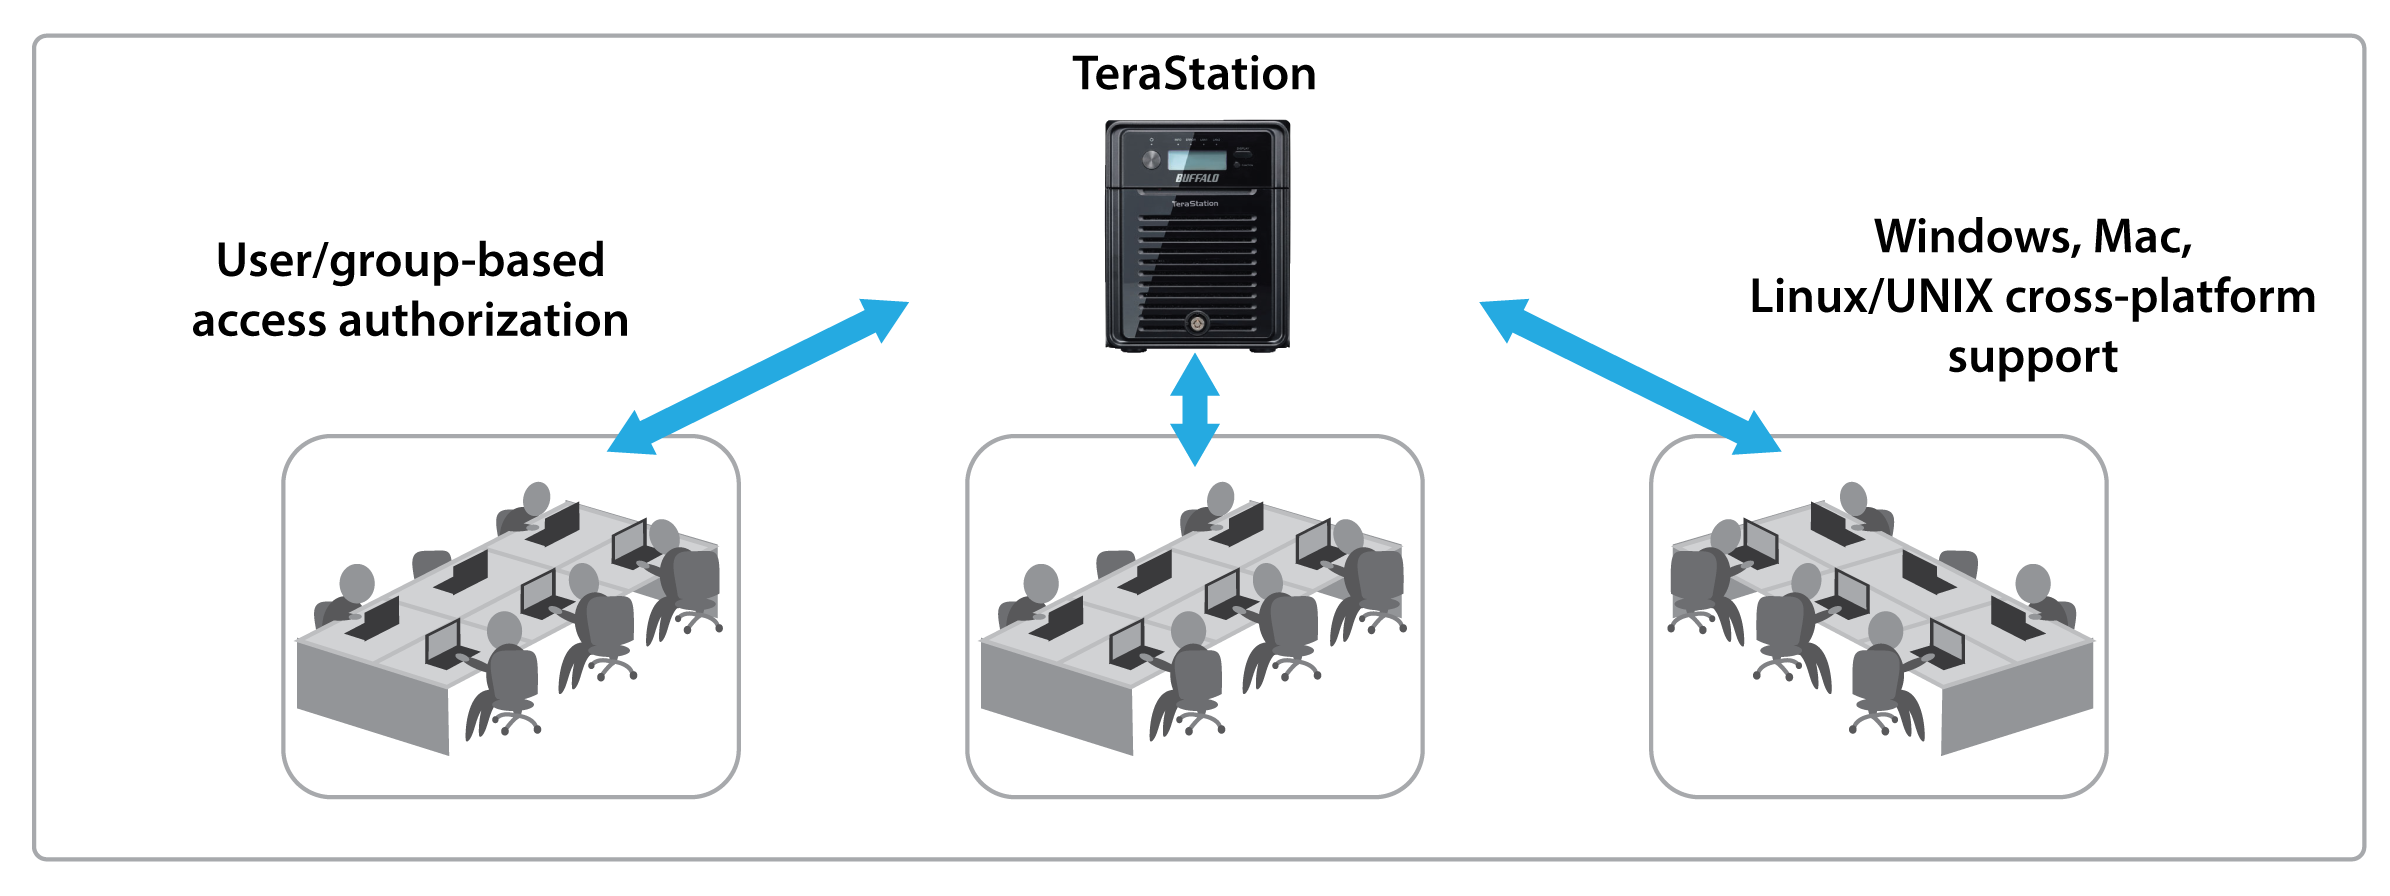 terastation 3000 reliable and secure network storage